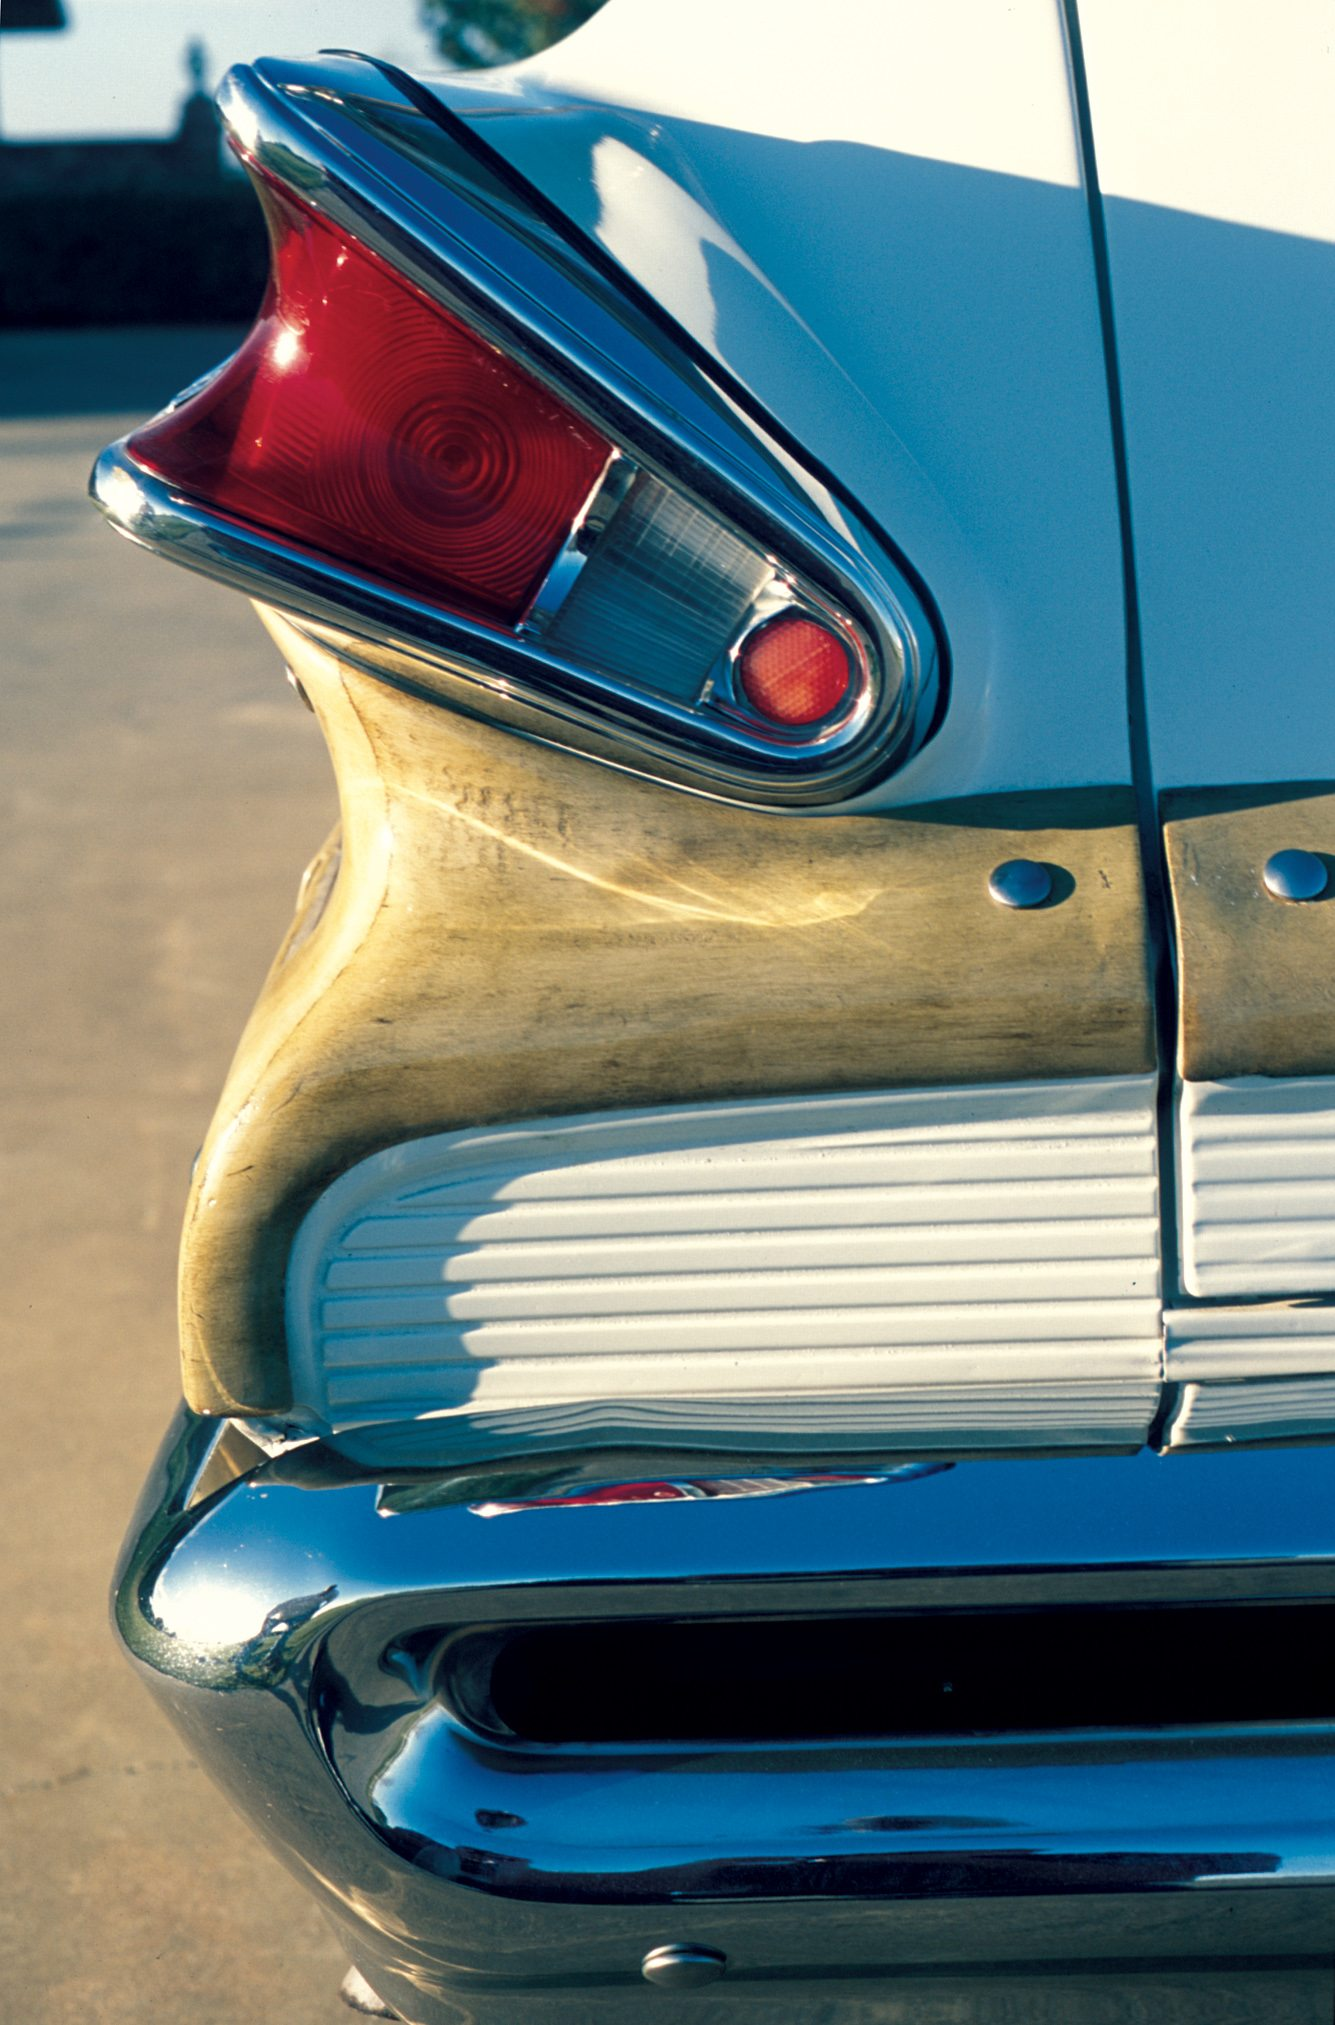 1957 Mercury Colony Park V-shaped Tail Lamps